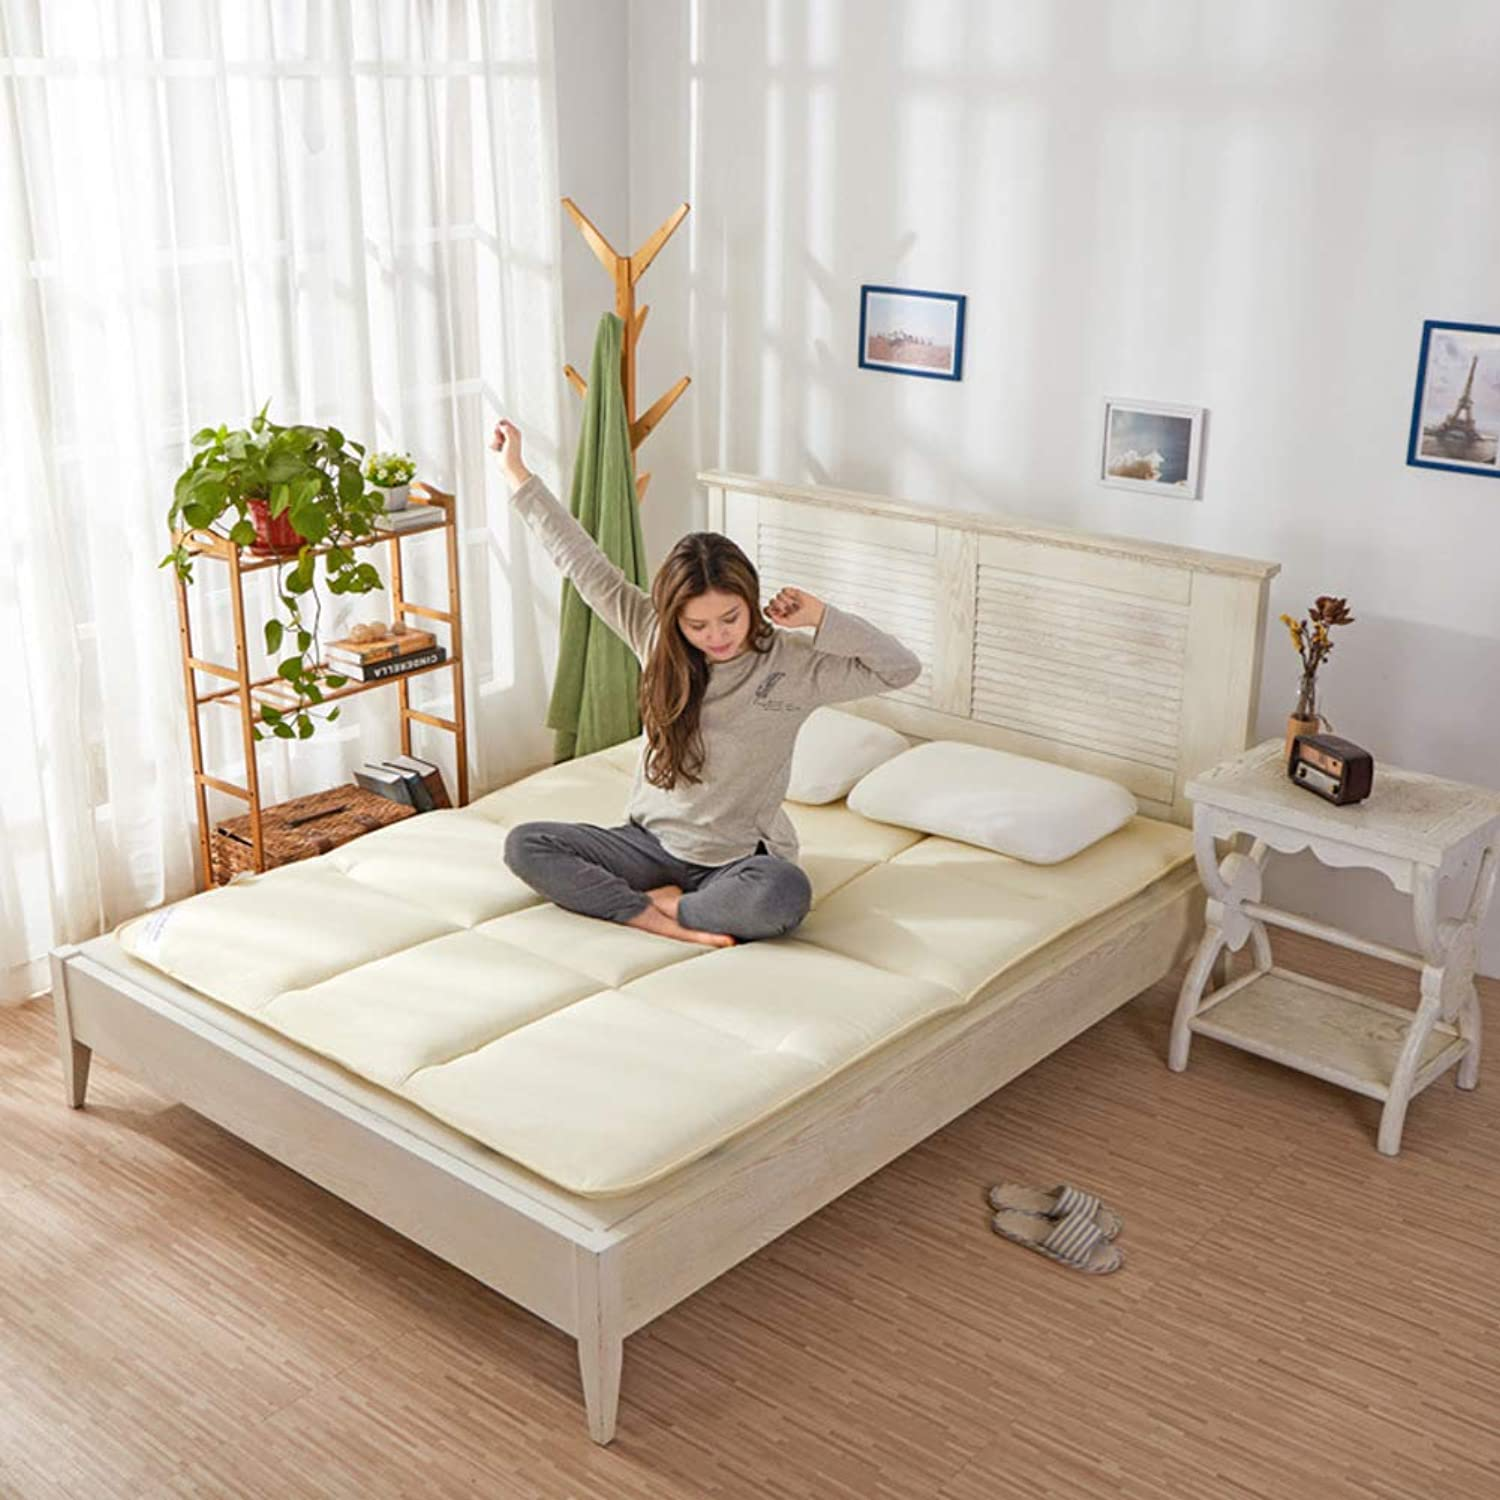 Thick Breathable Tatami Mattress,Foldable Double Single Mattress.for Student Dormitory Family Room-E 100x200cm(39x79inch)